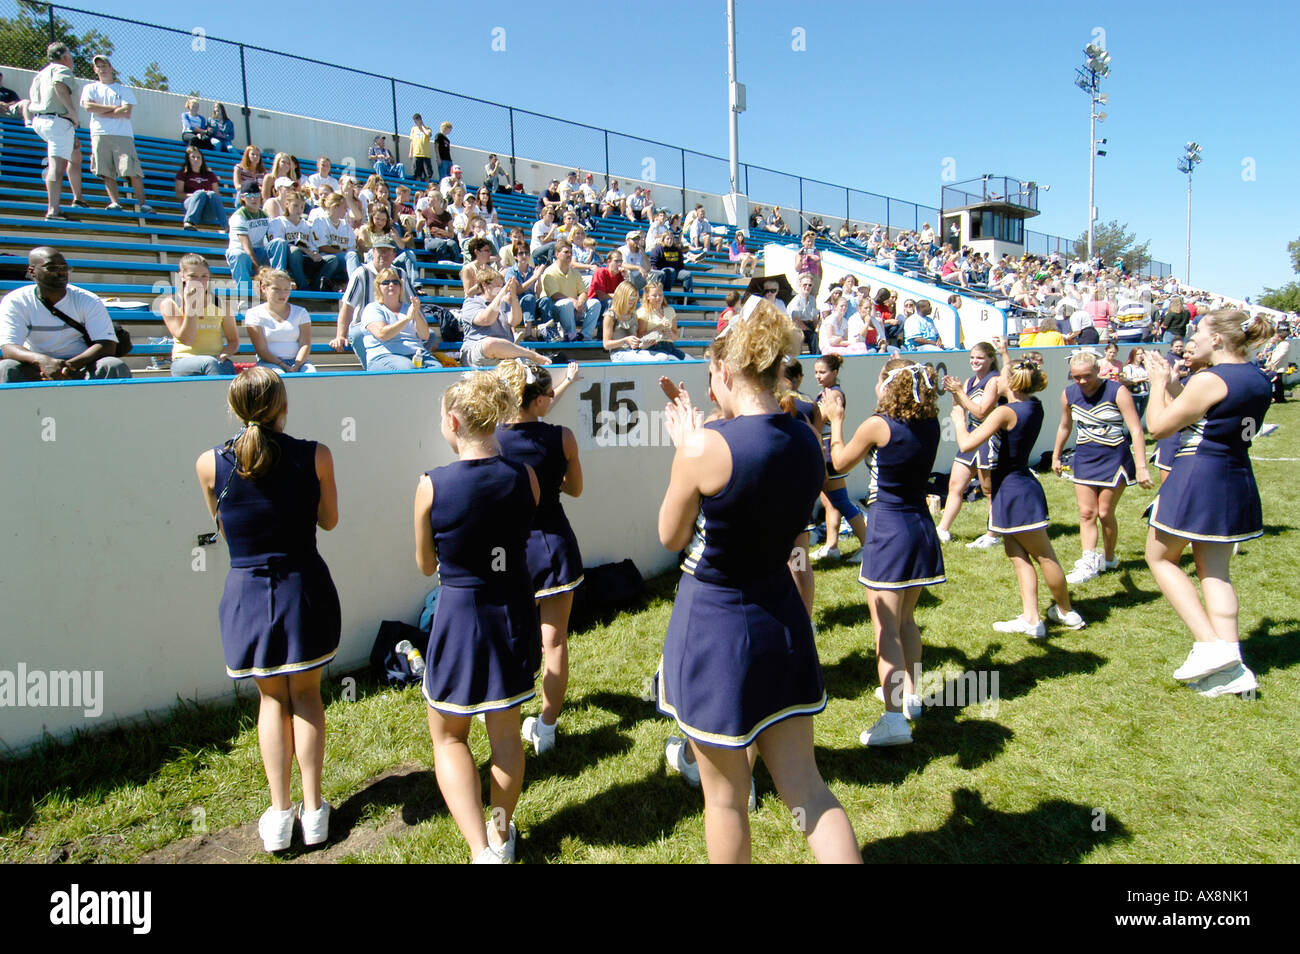 Cheerleaders Perform During Football Game doing routine that risk injury - Stock Image